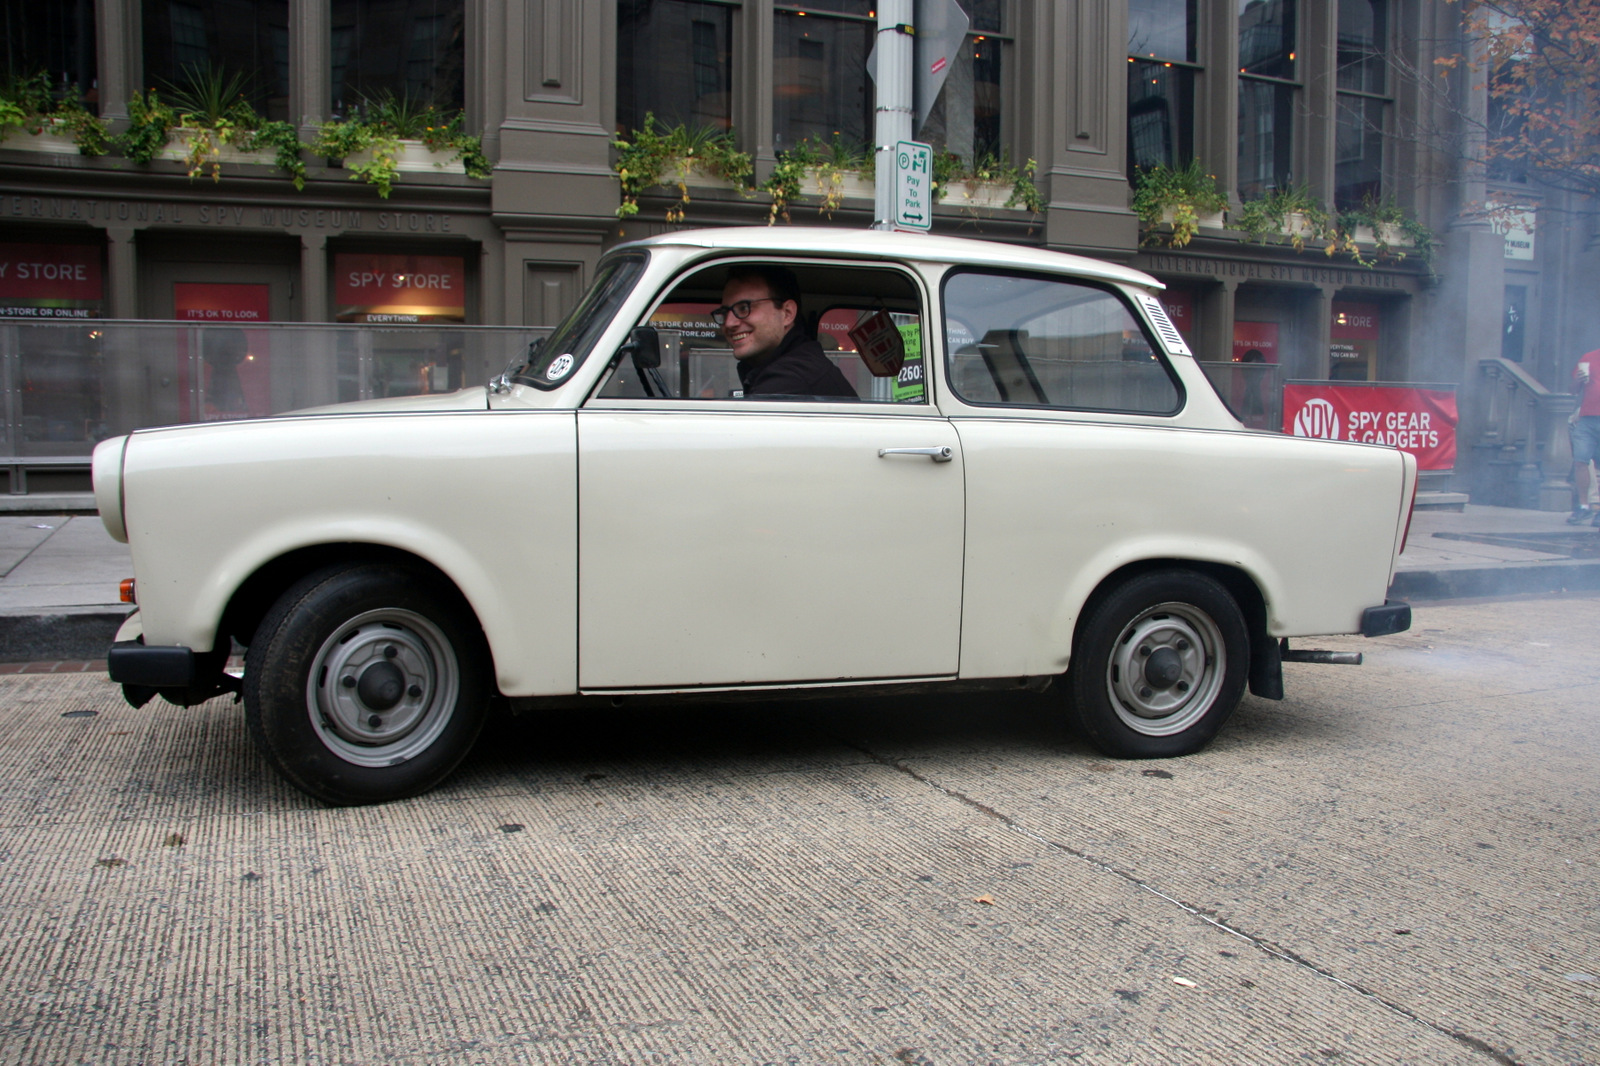 A Trabant two-stroke engine burns oil and gasoline mixed together. The cars are known for the thick blue smoke they emit when running.